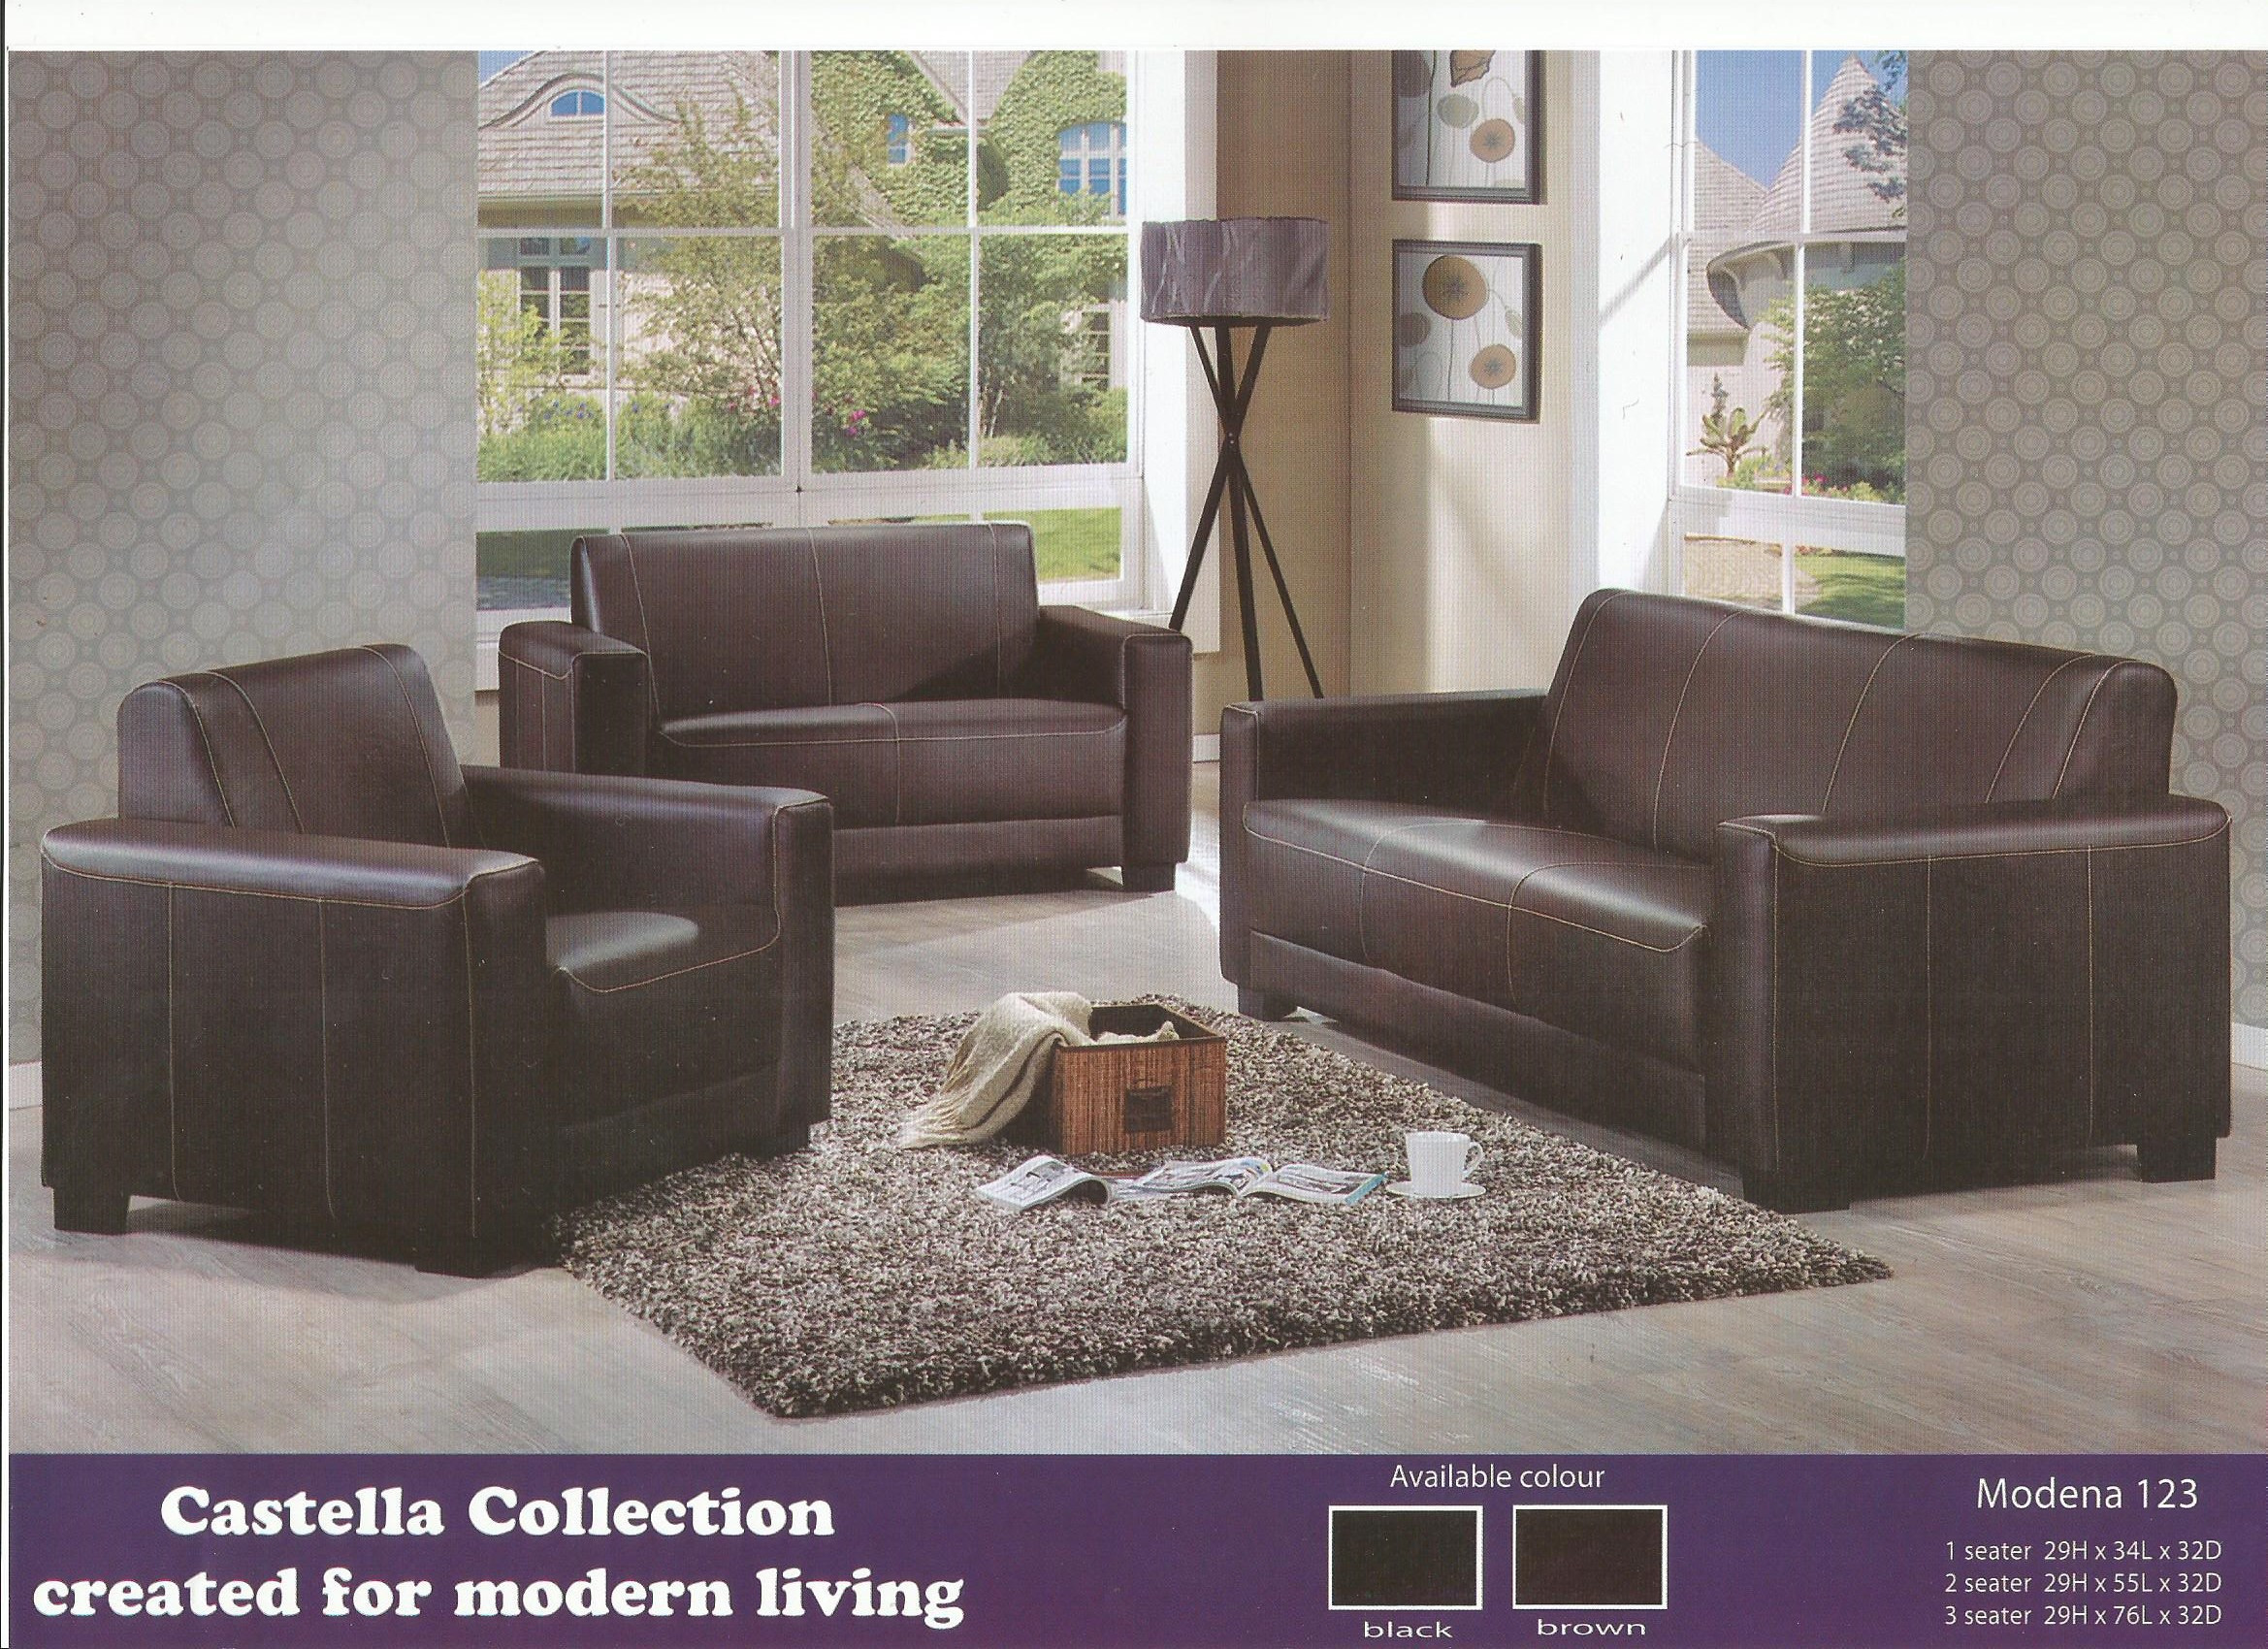 SOFA SET MURAH MODEL MODENA 123 1 2 3 SET Home & Furniture Furniture on Carousell